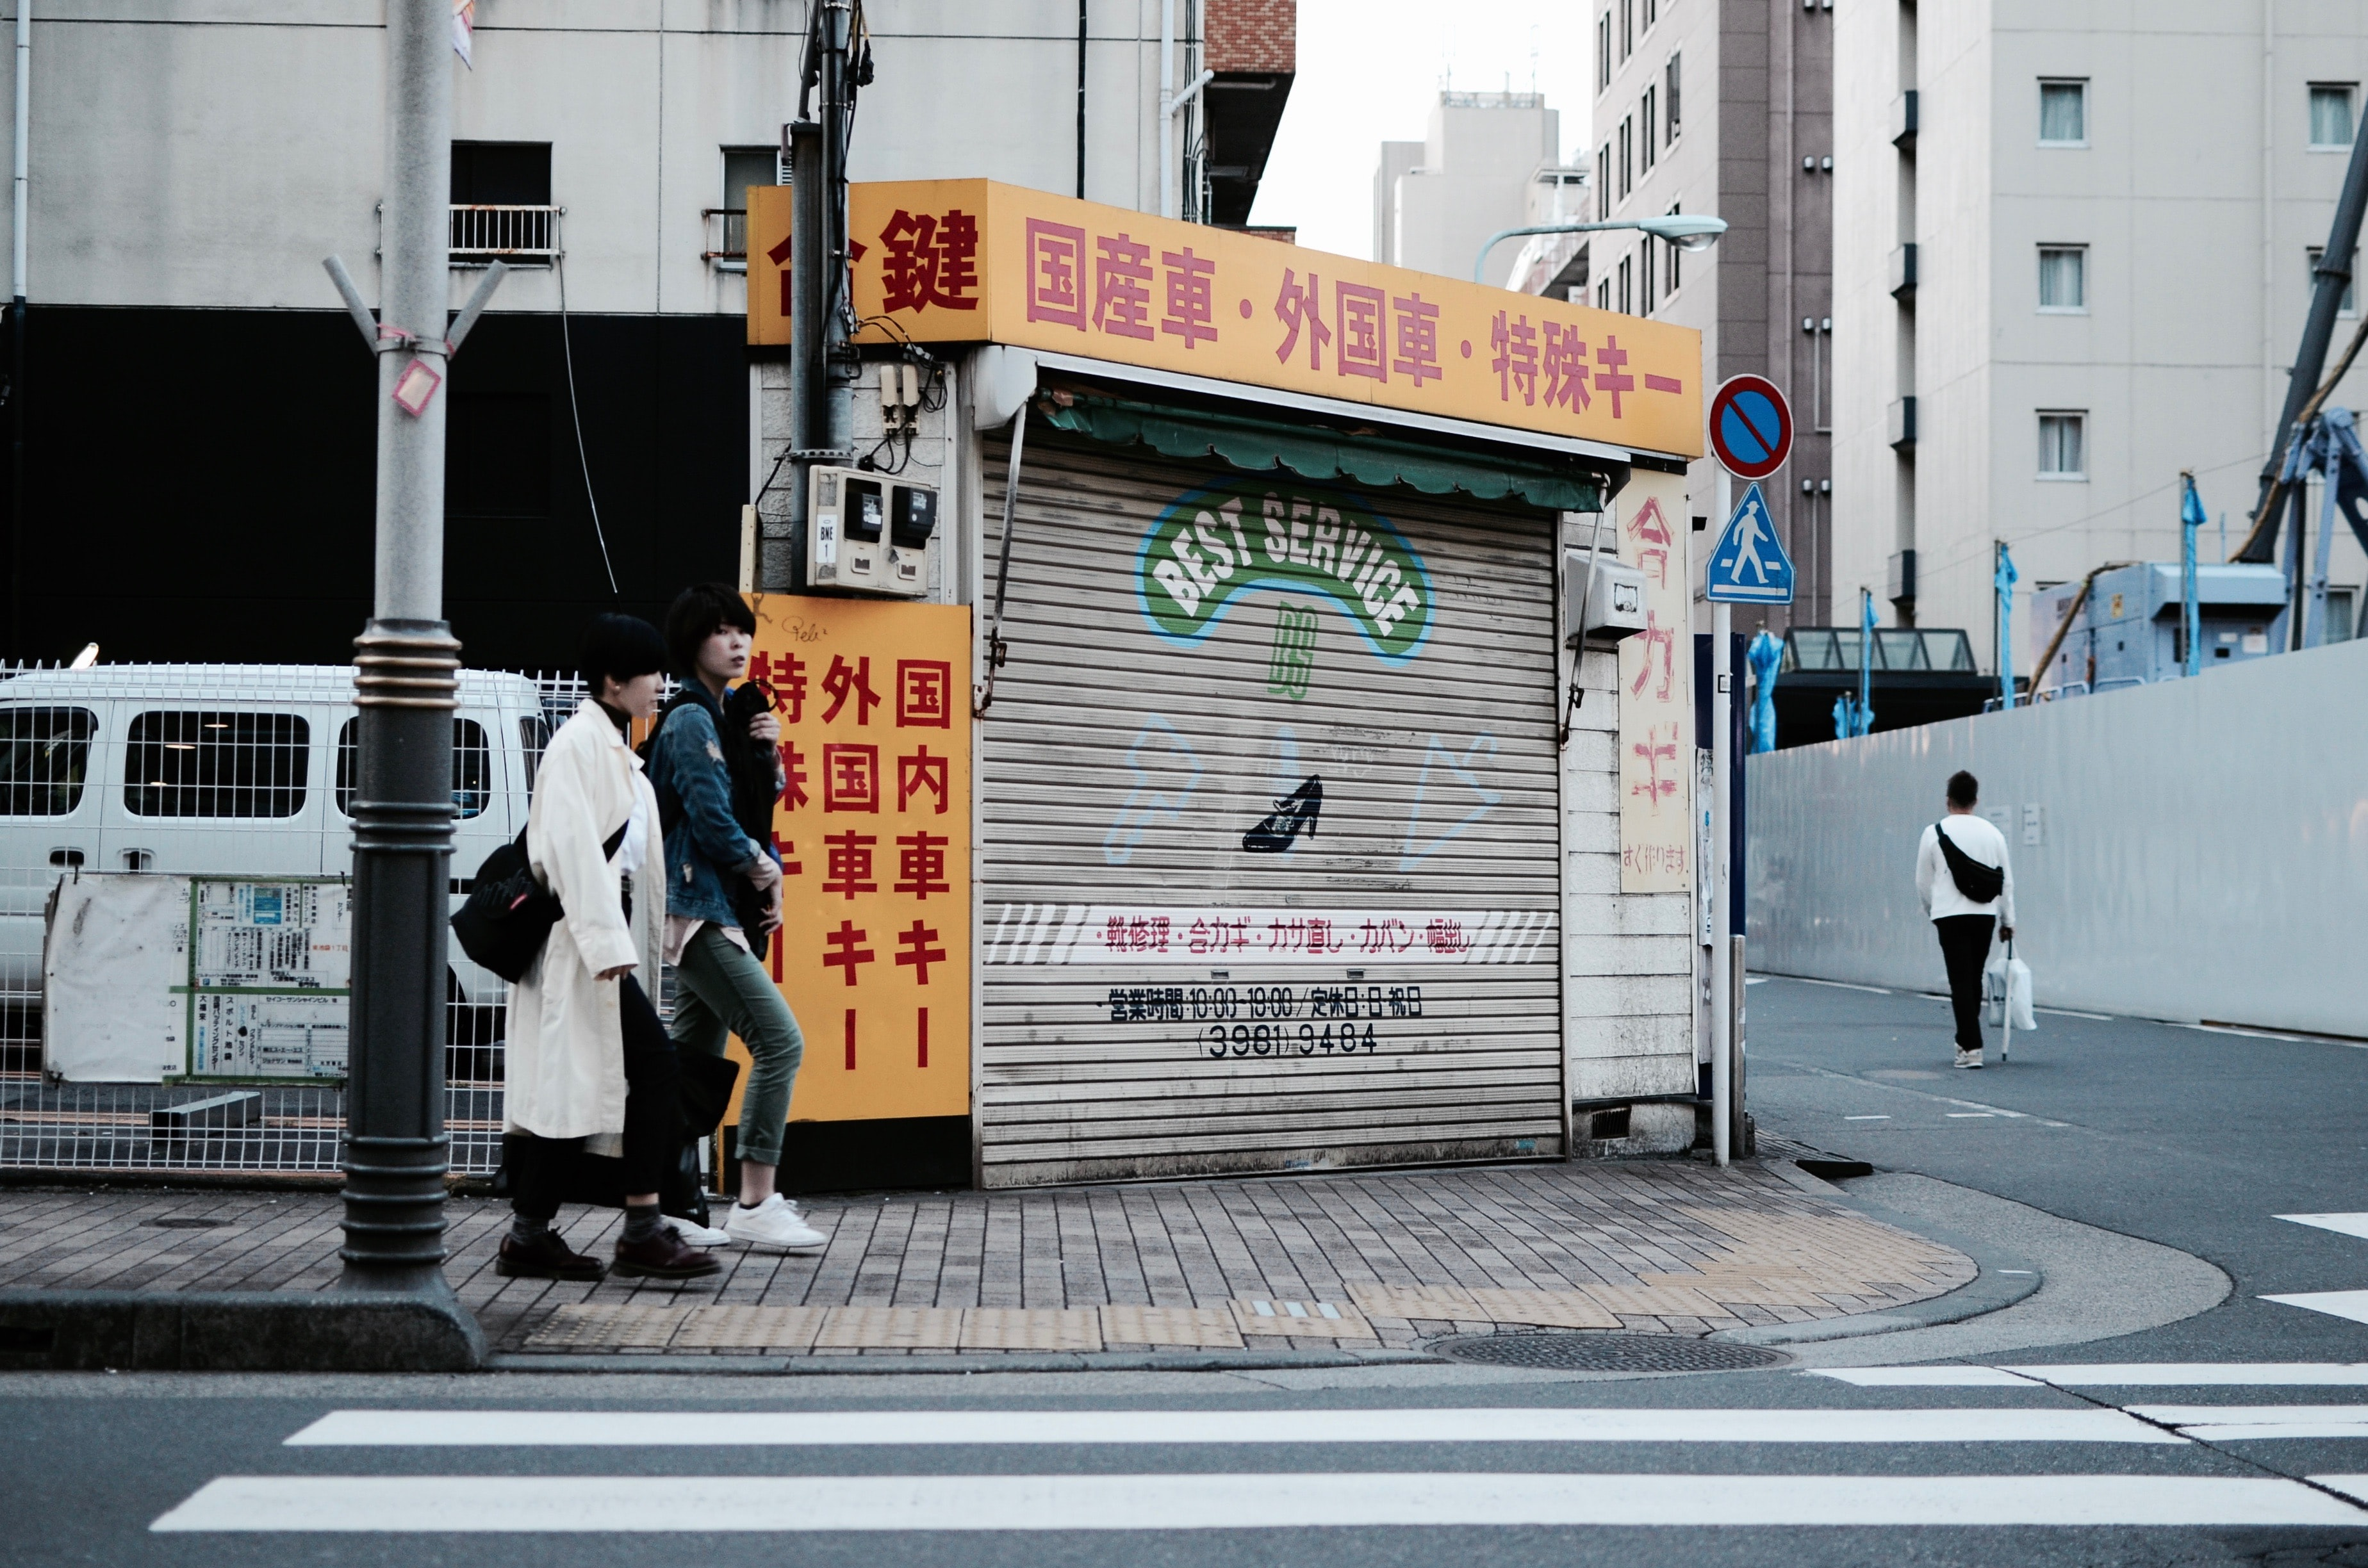 Young people on a sidewalk near a storefront in Tokyo's Toshima ward